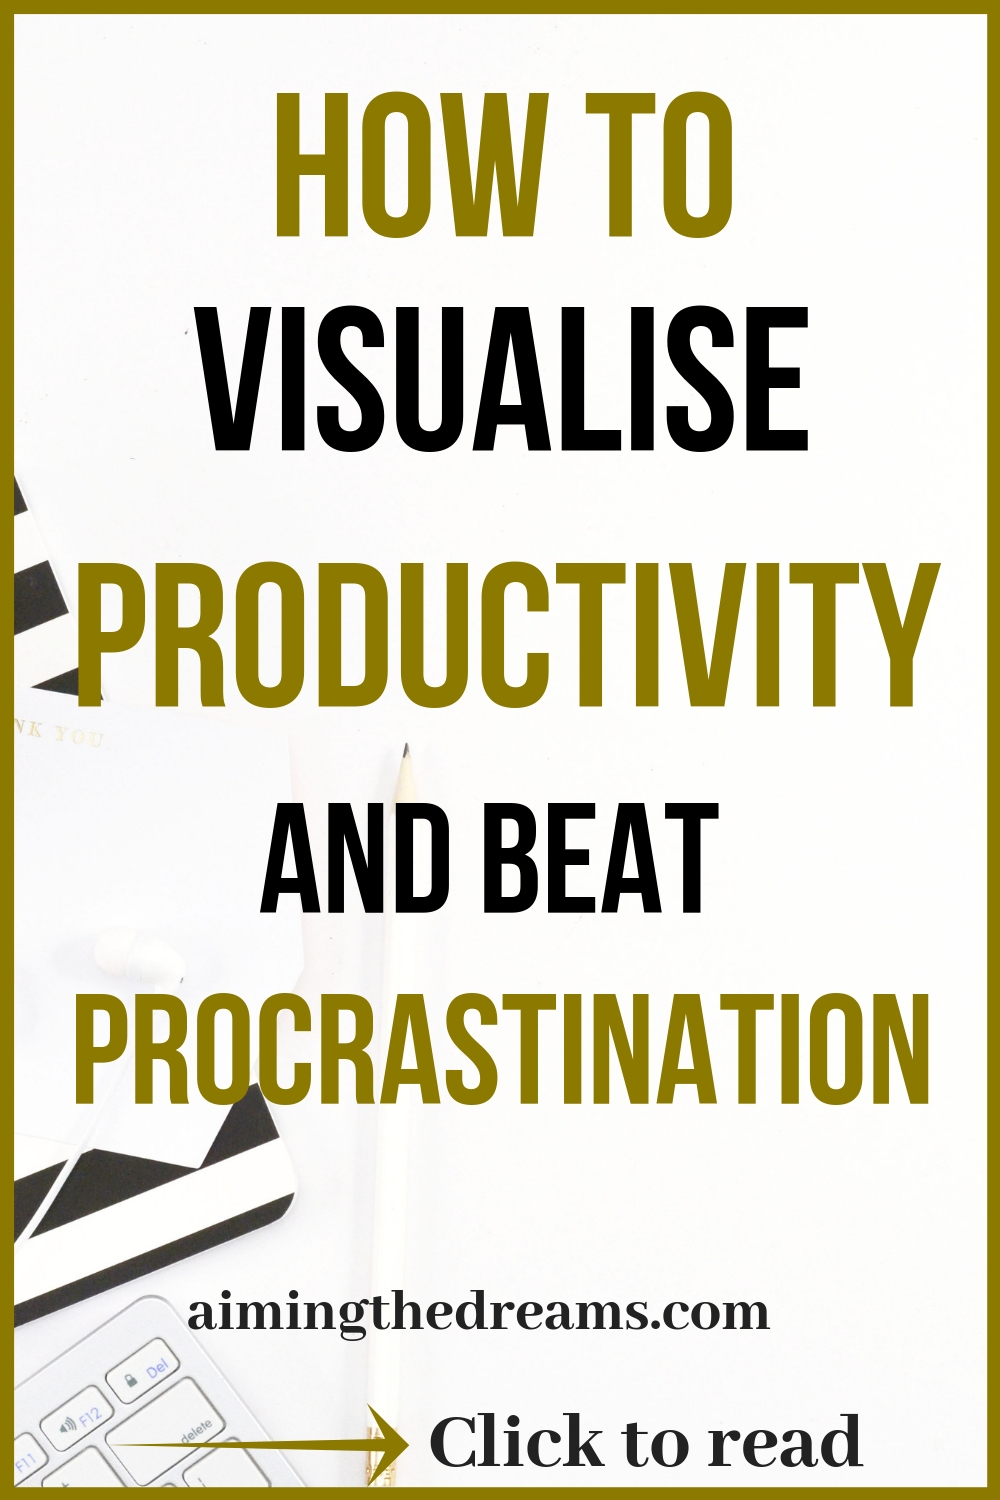 how to visualise productivity to beat procrastination. click to read